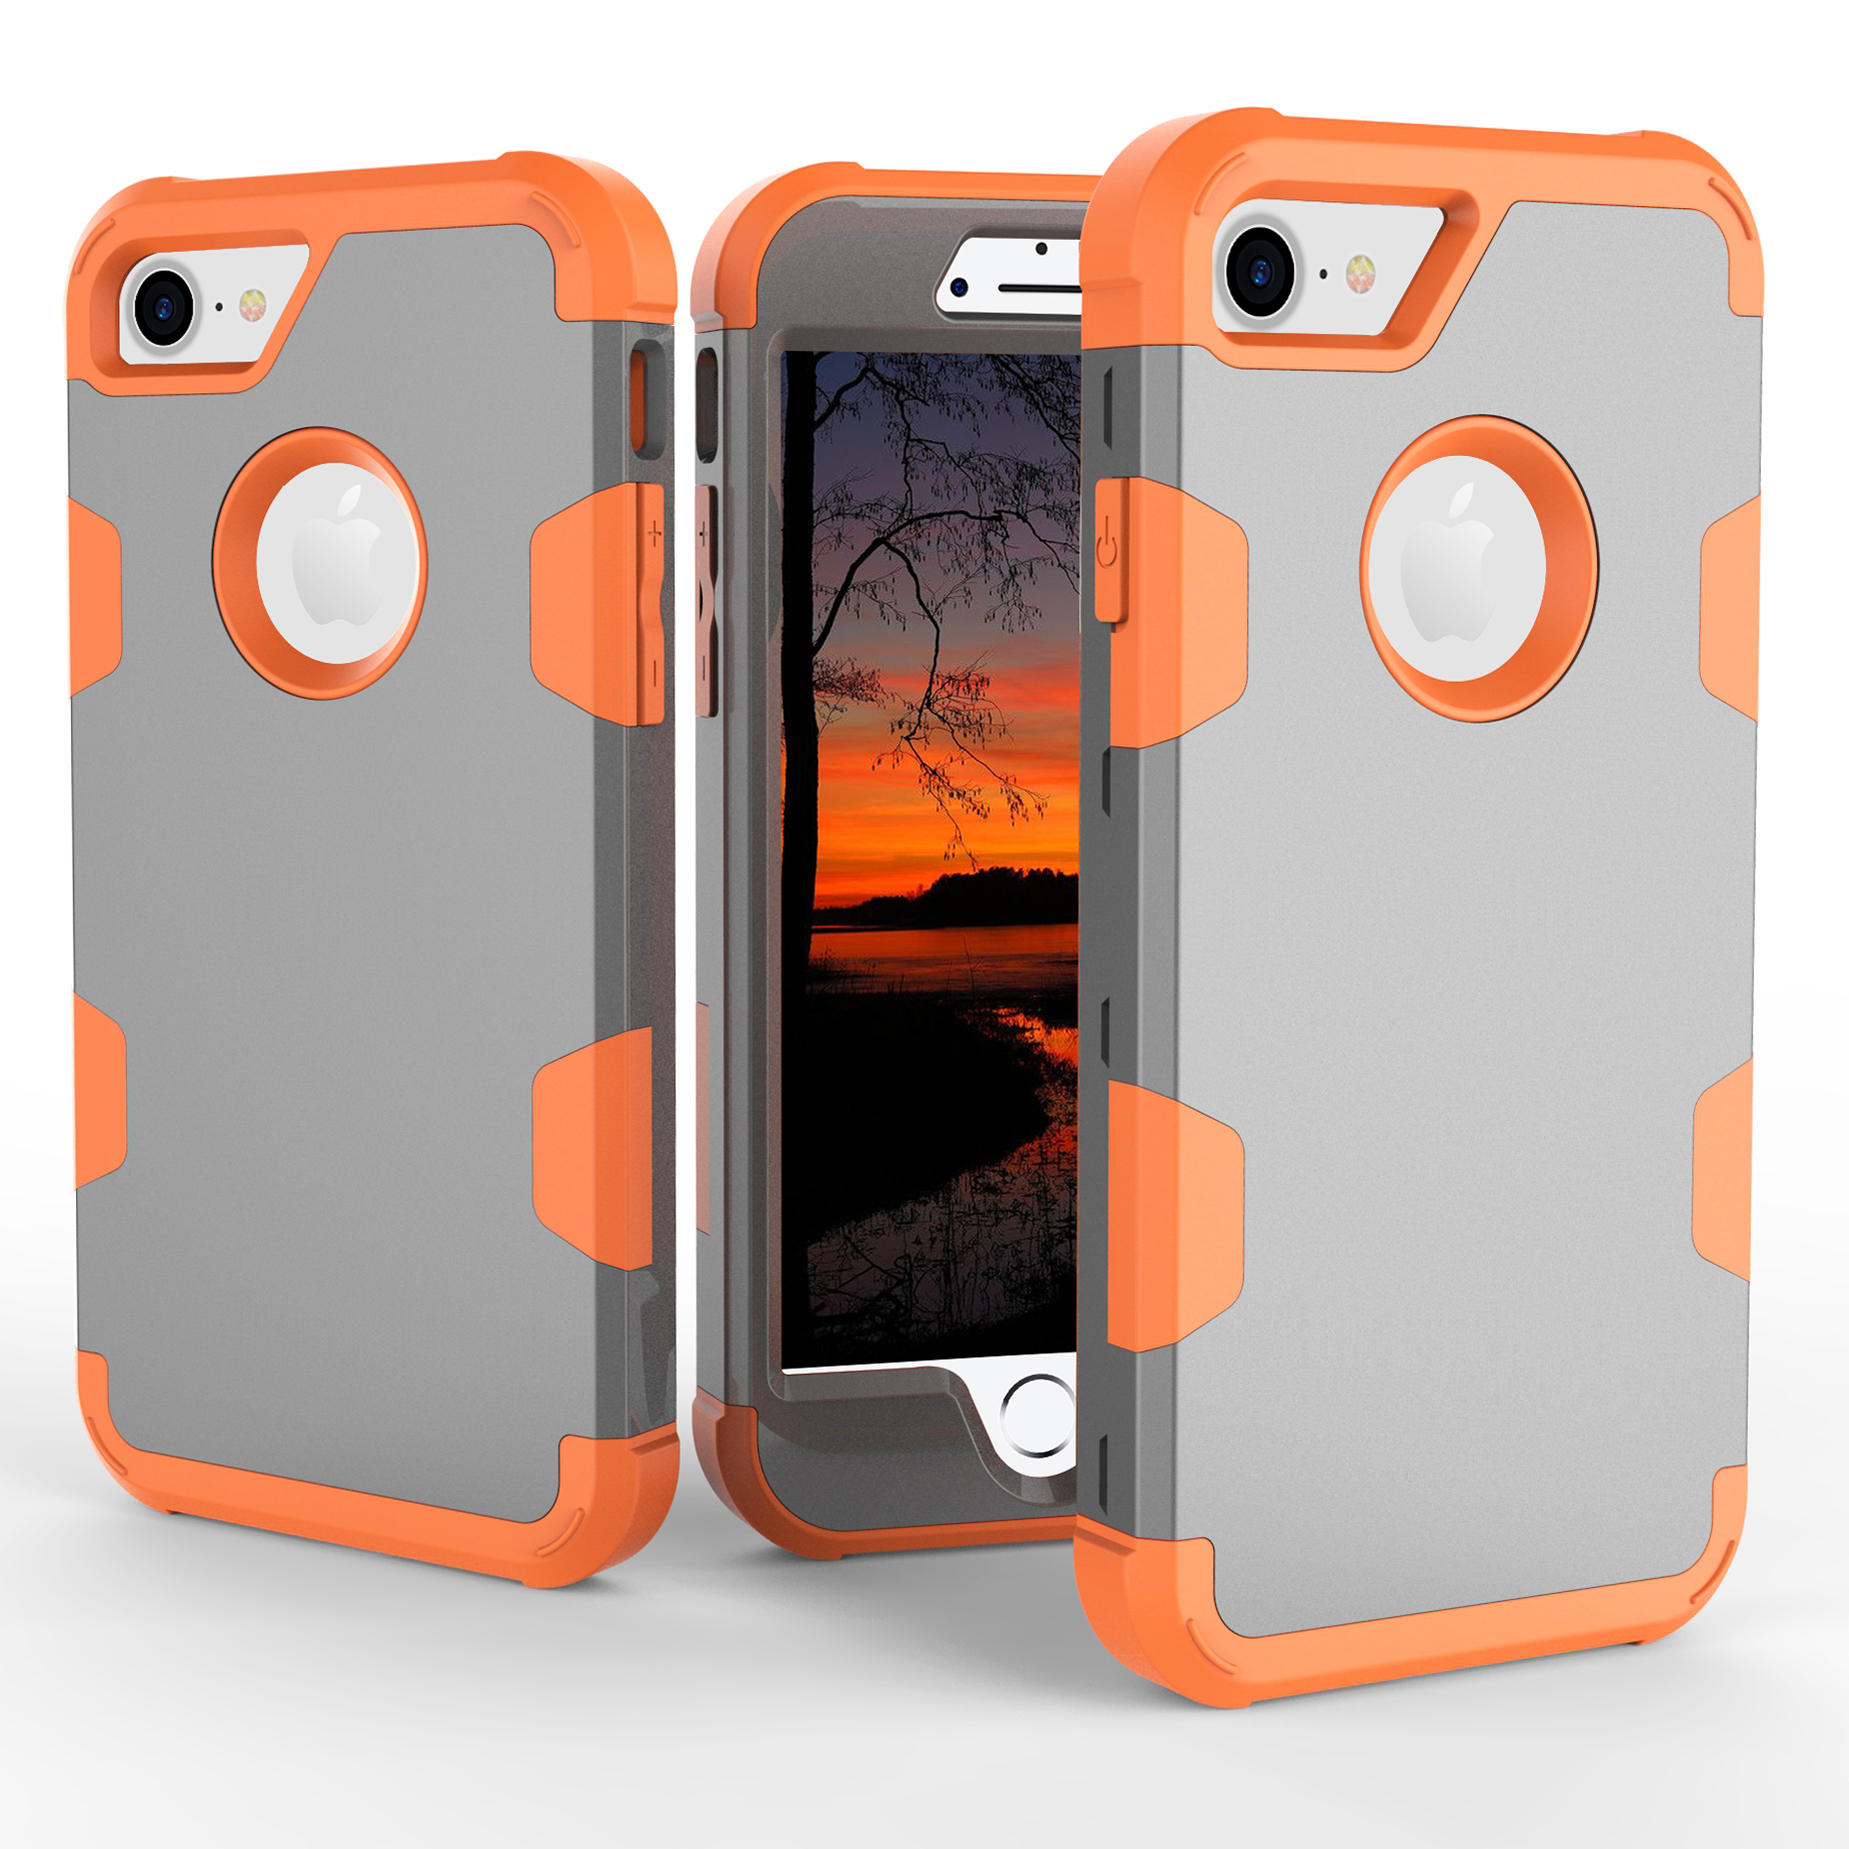 For iPhone 7 PC+ Silicone 2 in 1 Hit Color Tri-proof Shockproof Dustproof Anti-fall Protective Cover Back Case Gray + orange